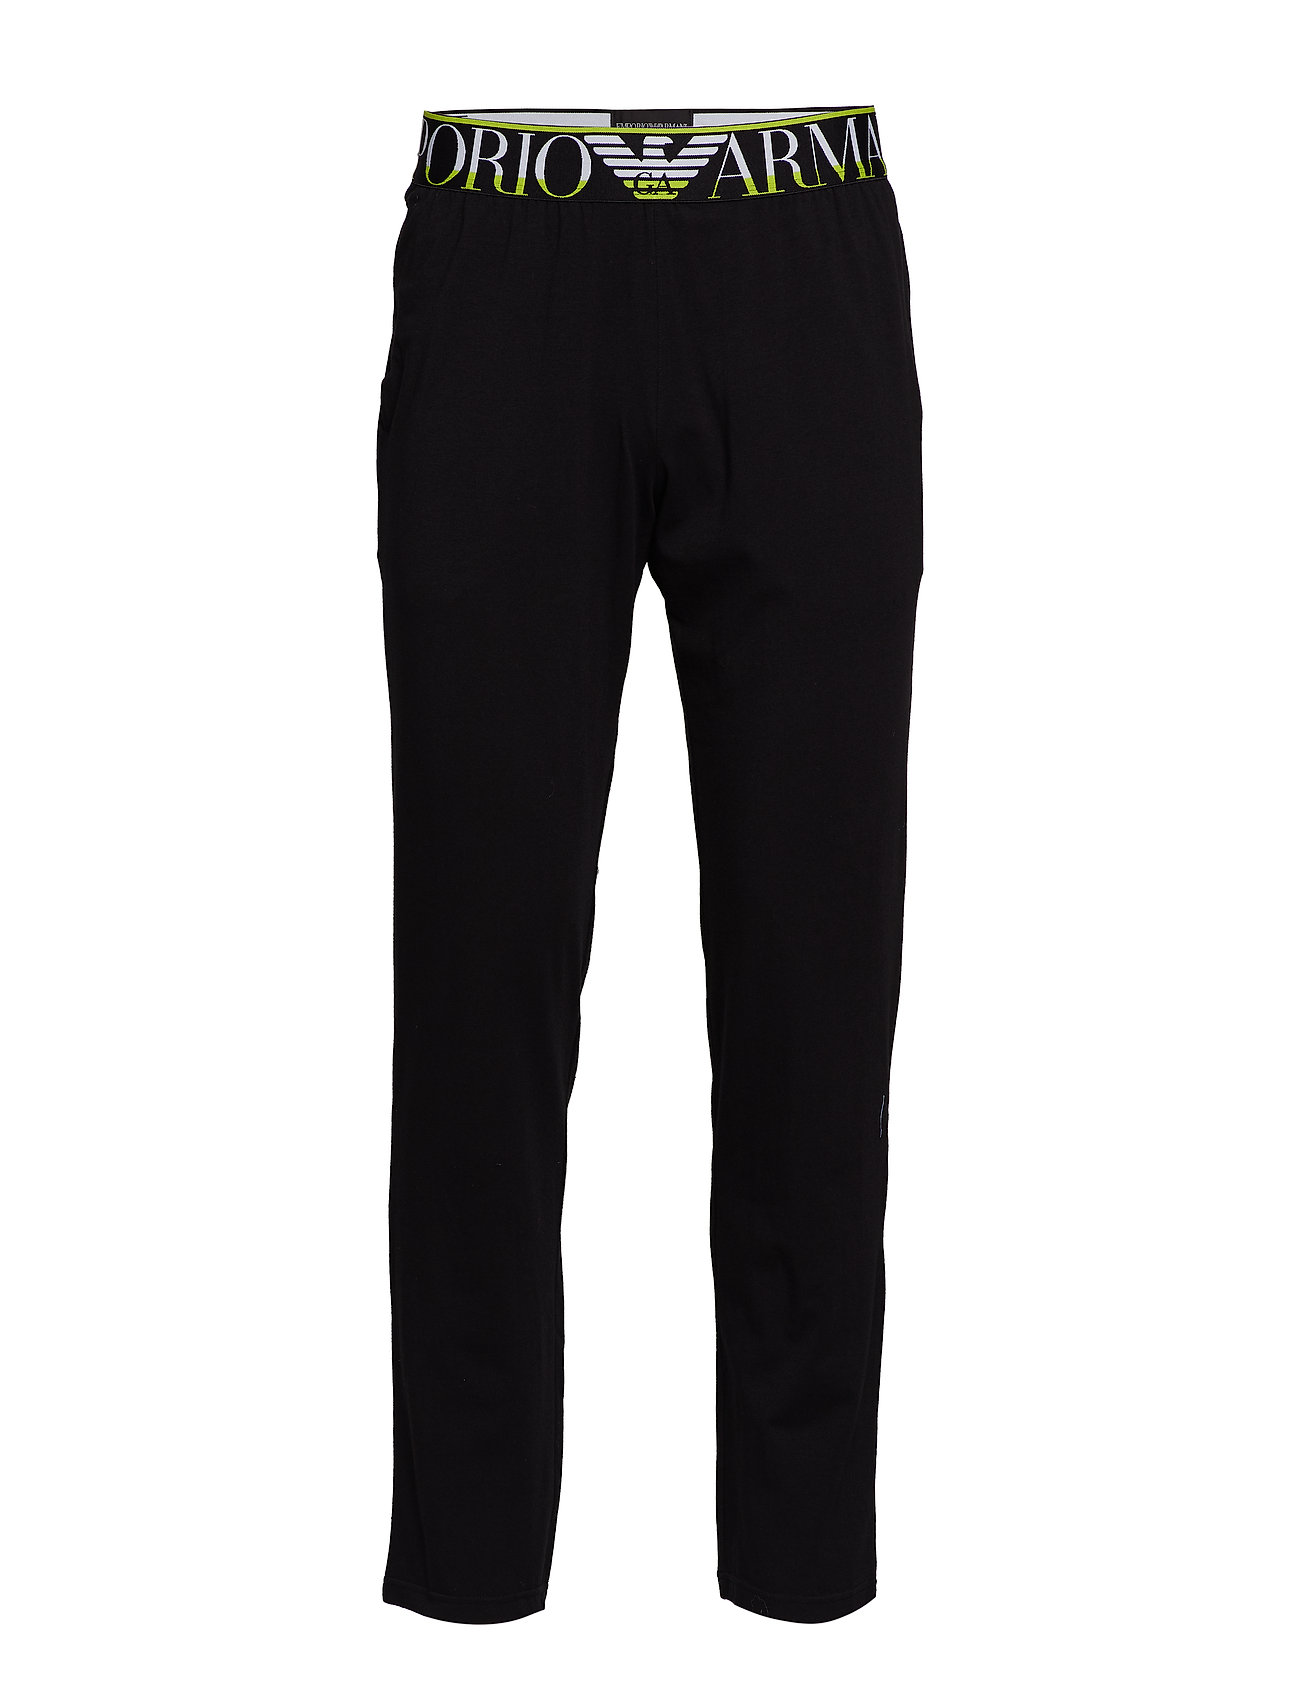 Emporio Armani MEN'S KNIT TROUSERS - NERO